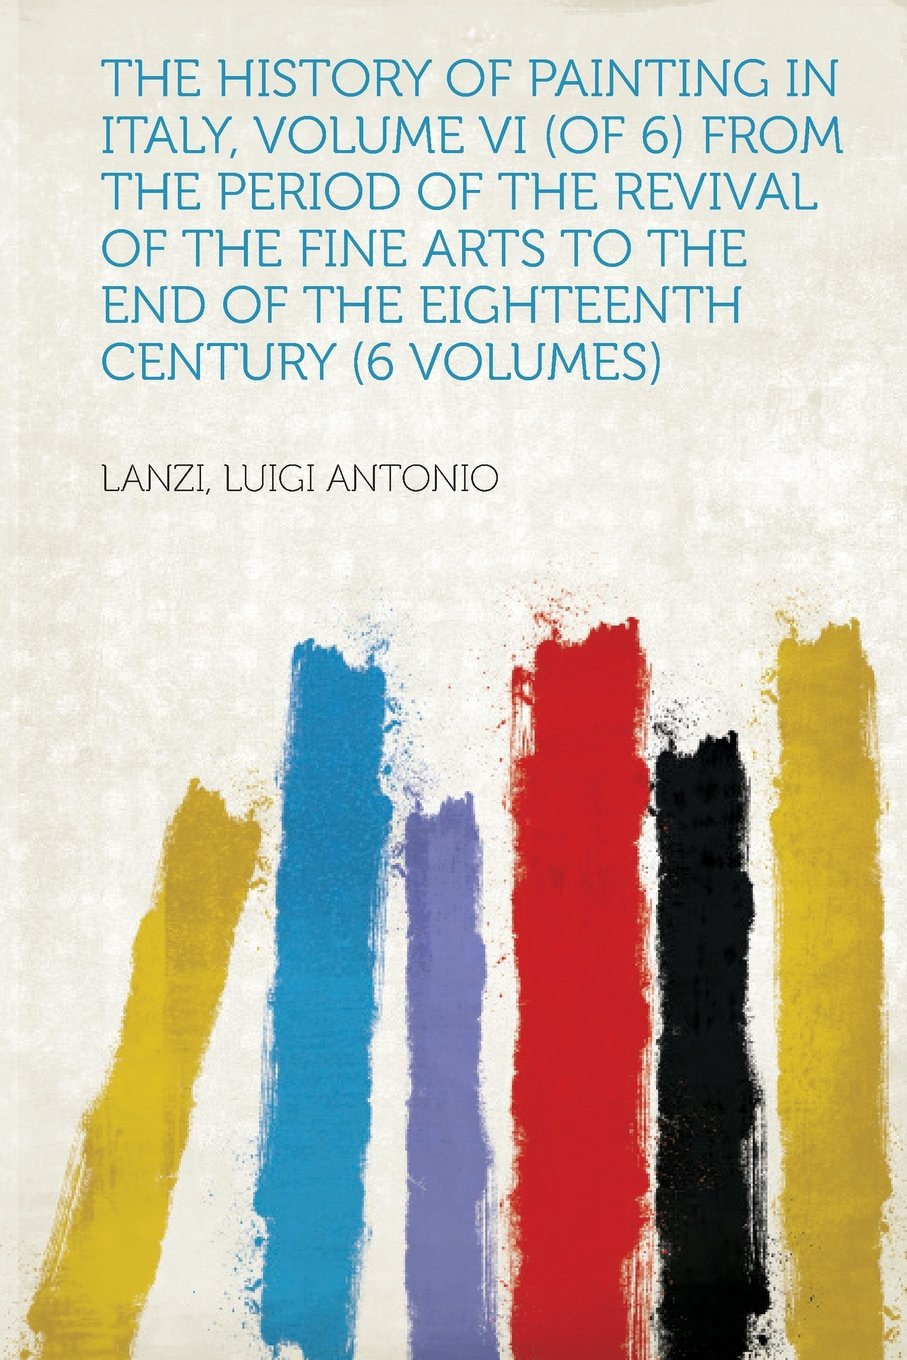 Download The History of Painting in Italy, Volume VI (of 6) from the Period of the Revival of the Fine Arts to the End of the Eighteenth Century (6 volumes) PDF